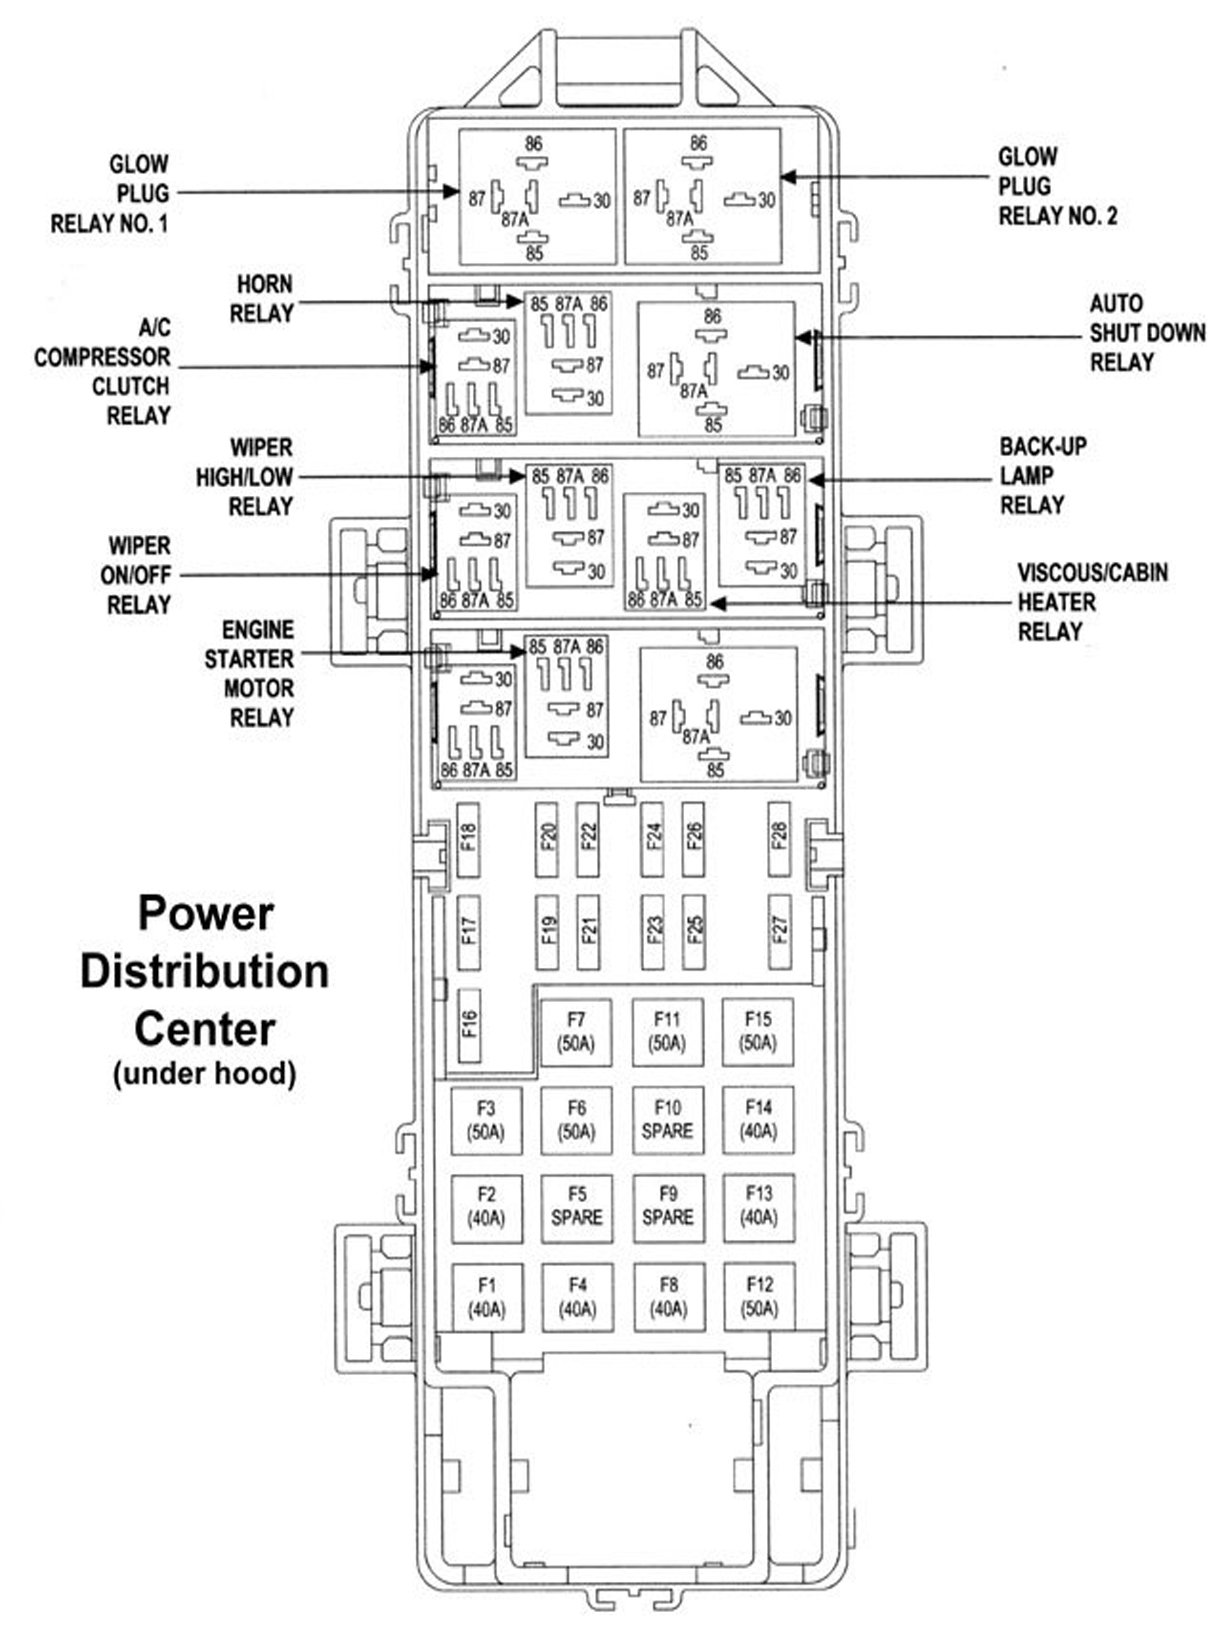 hight resolution of 96 jeep grand cherokee under hood fuse diagram wiring diagram tags 96 jeep cherokee fuse box layout 96 jeep fuse box layout